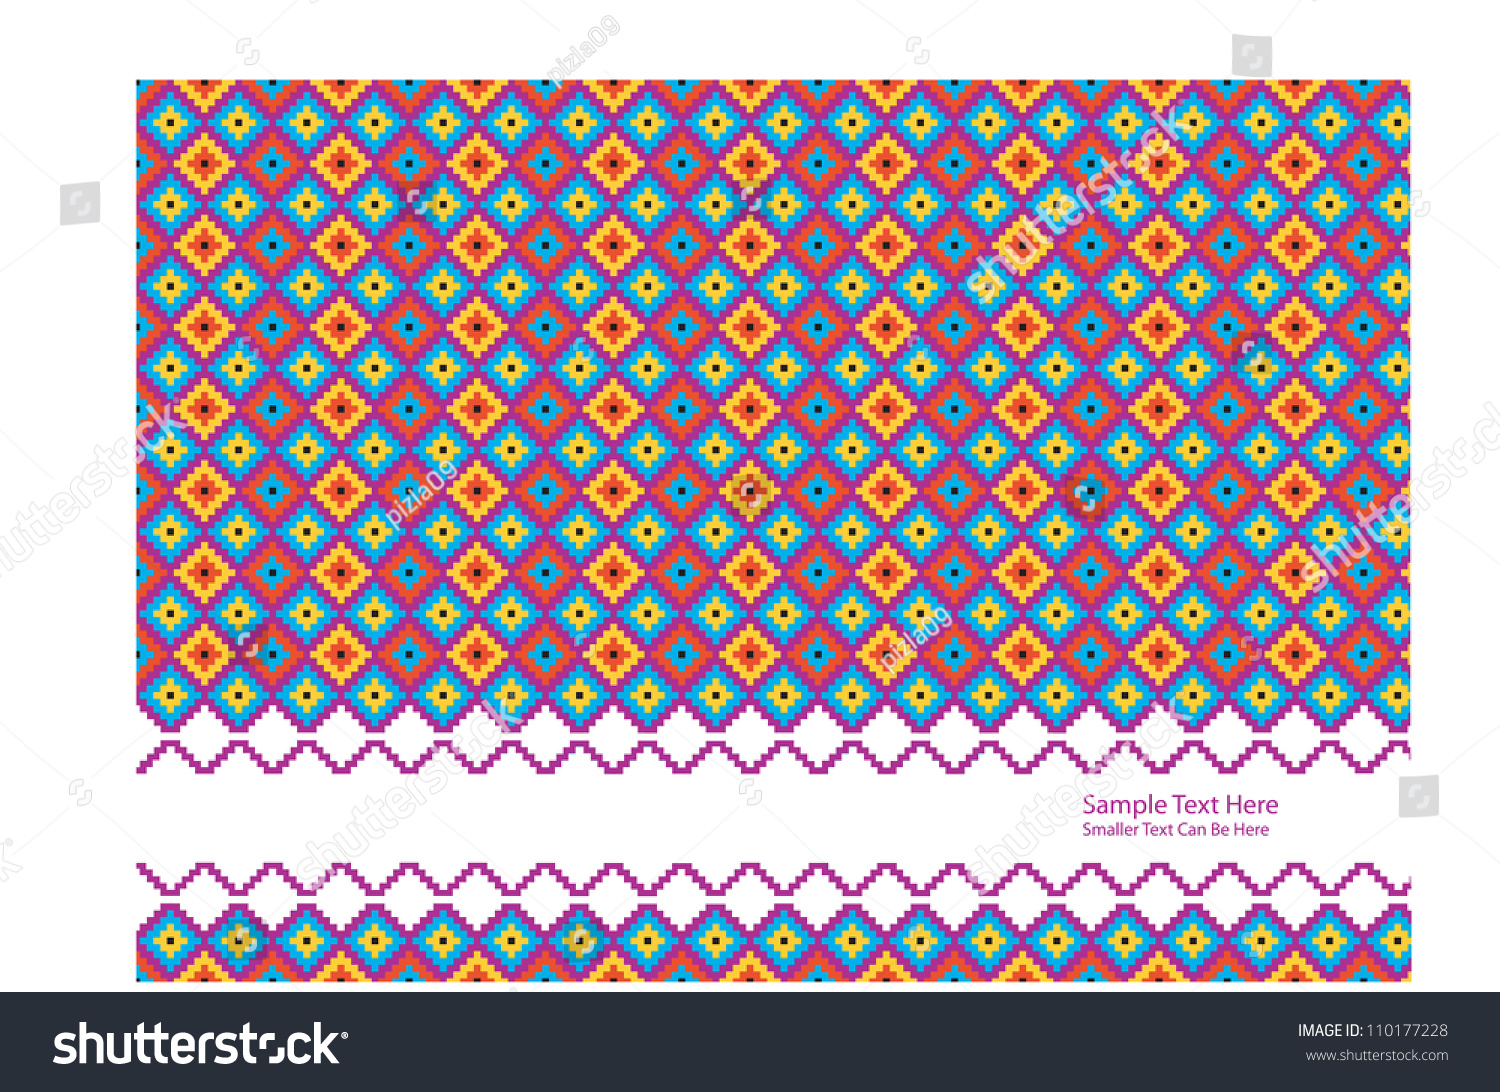 Color Abstract Vector Background Text Frame Stock Vector: Abstract Vector Backdrop Design With Colorful Primitive